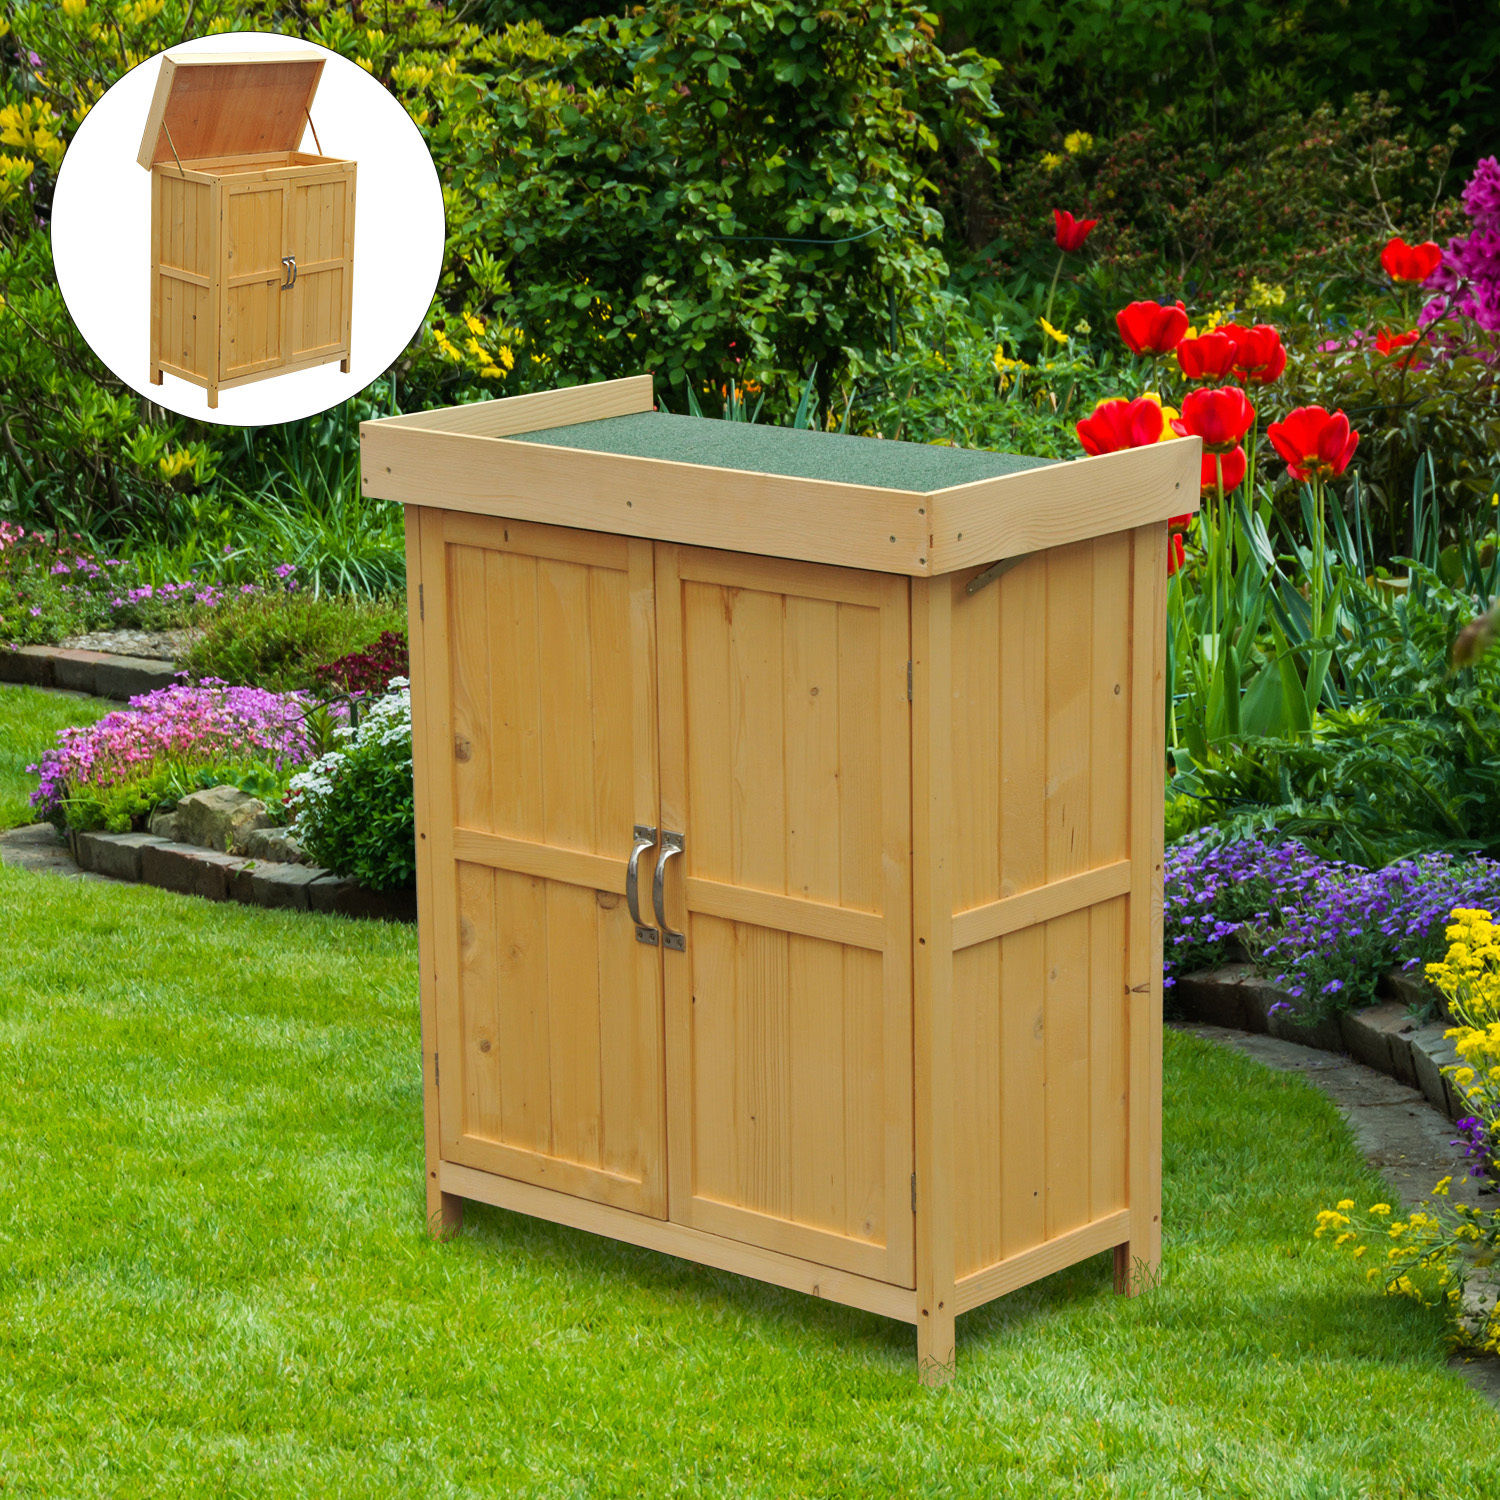 Image of CAD $104.99 Outsunny Garden Storage Shed Lift Top Outdoor Cupboard Box Natural wood / Double Door Tool Organization Backyard Chest Deck Canada 95509792105